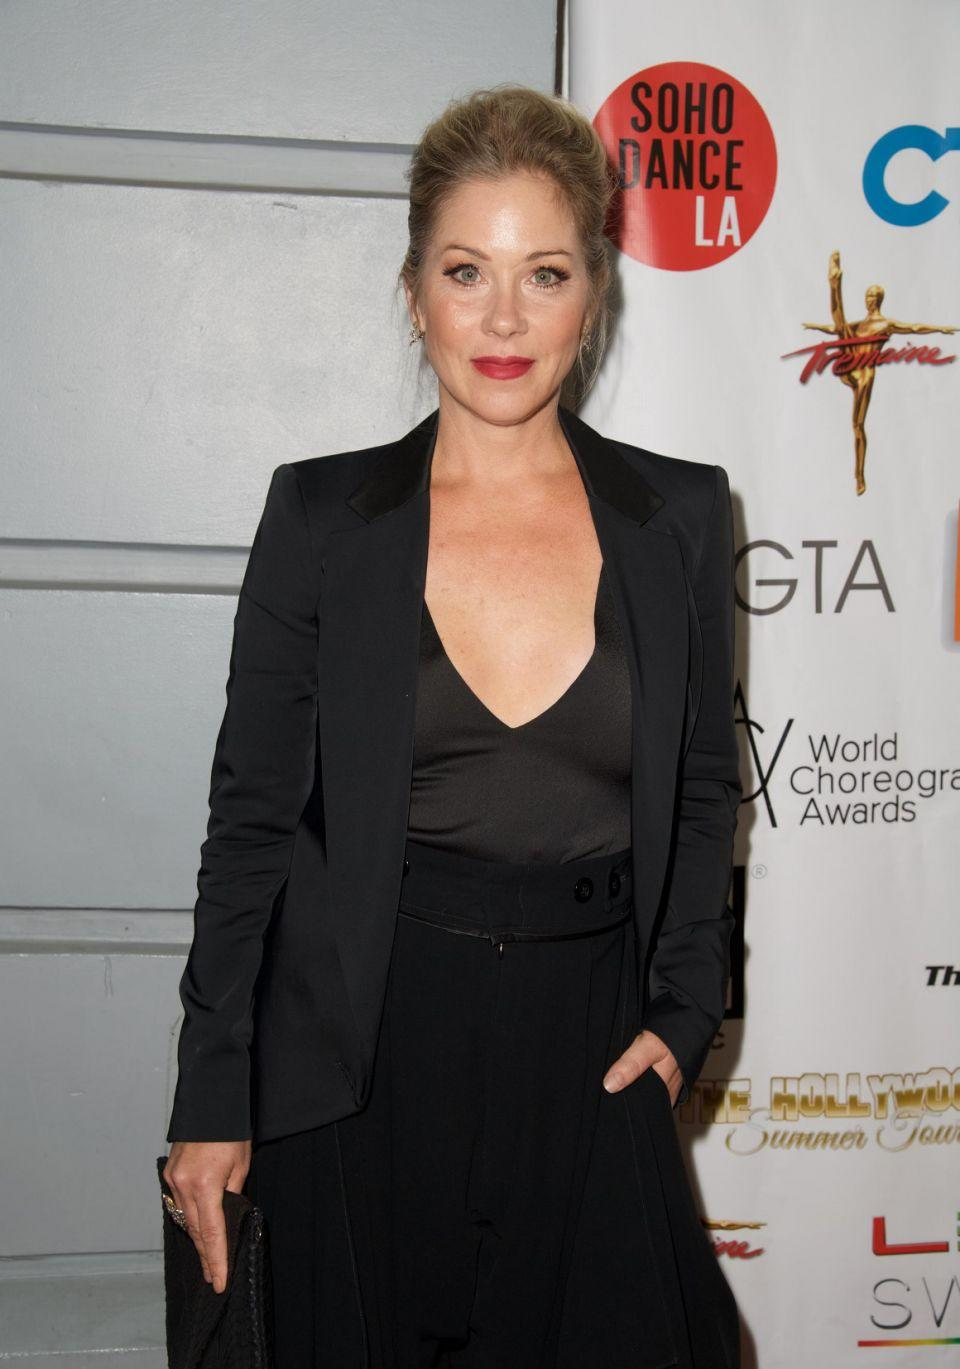 Christina Applegate (here in 2016) has revealed she has undergone surgery to remove her ovaries and fallopian tubes to reduce her risk of cancer. Source: Getty